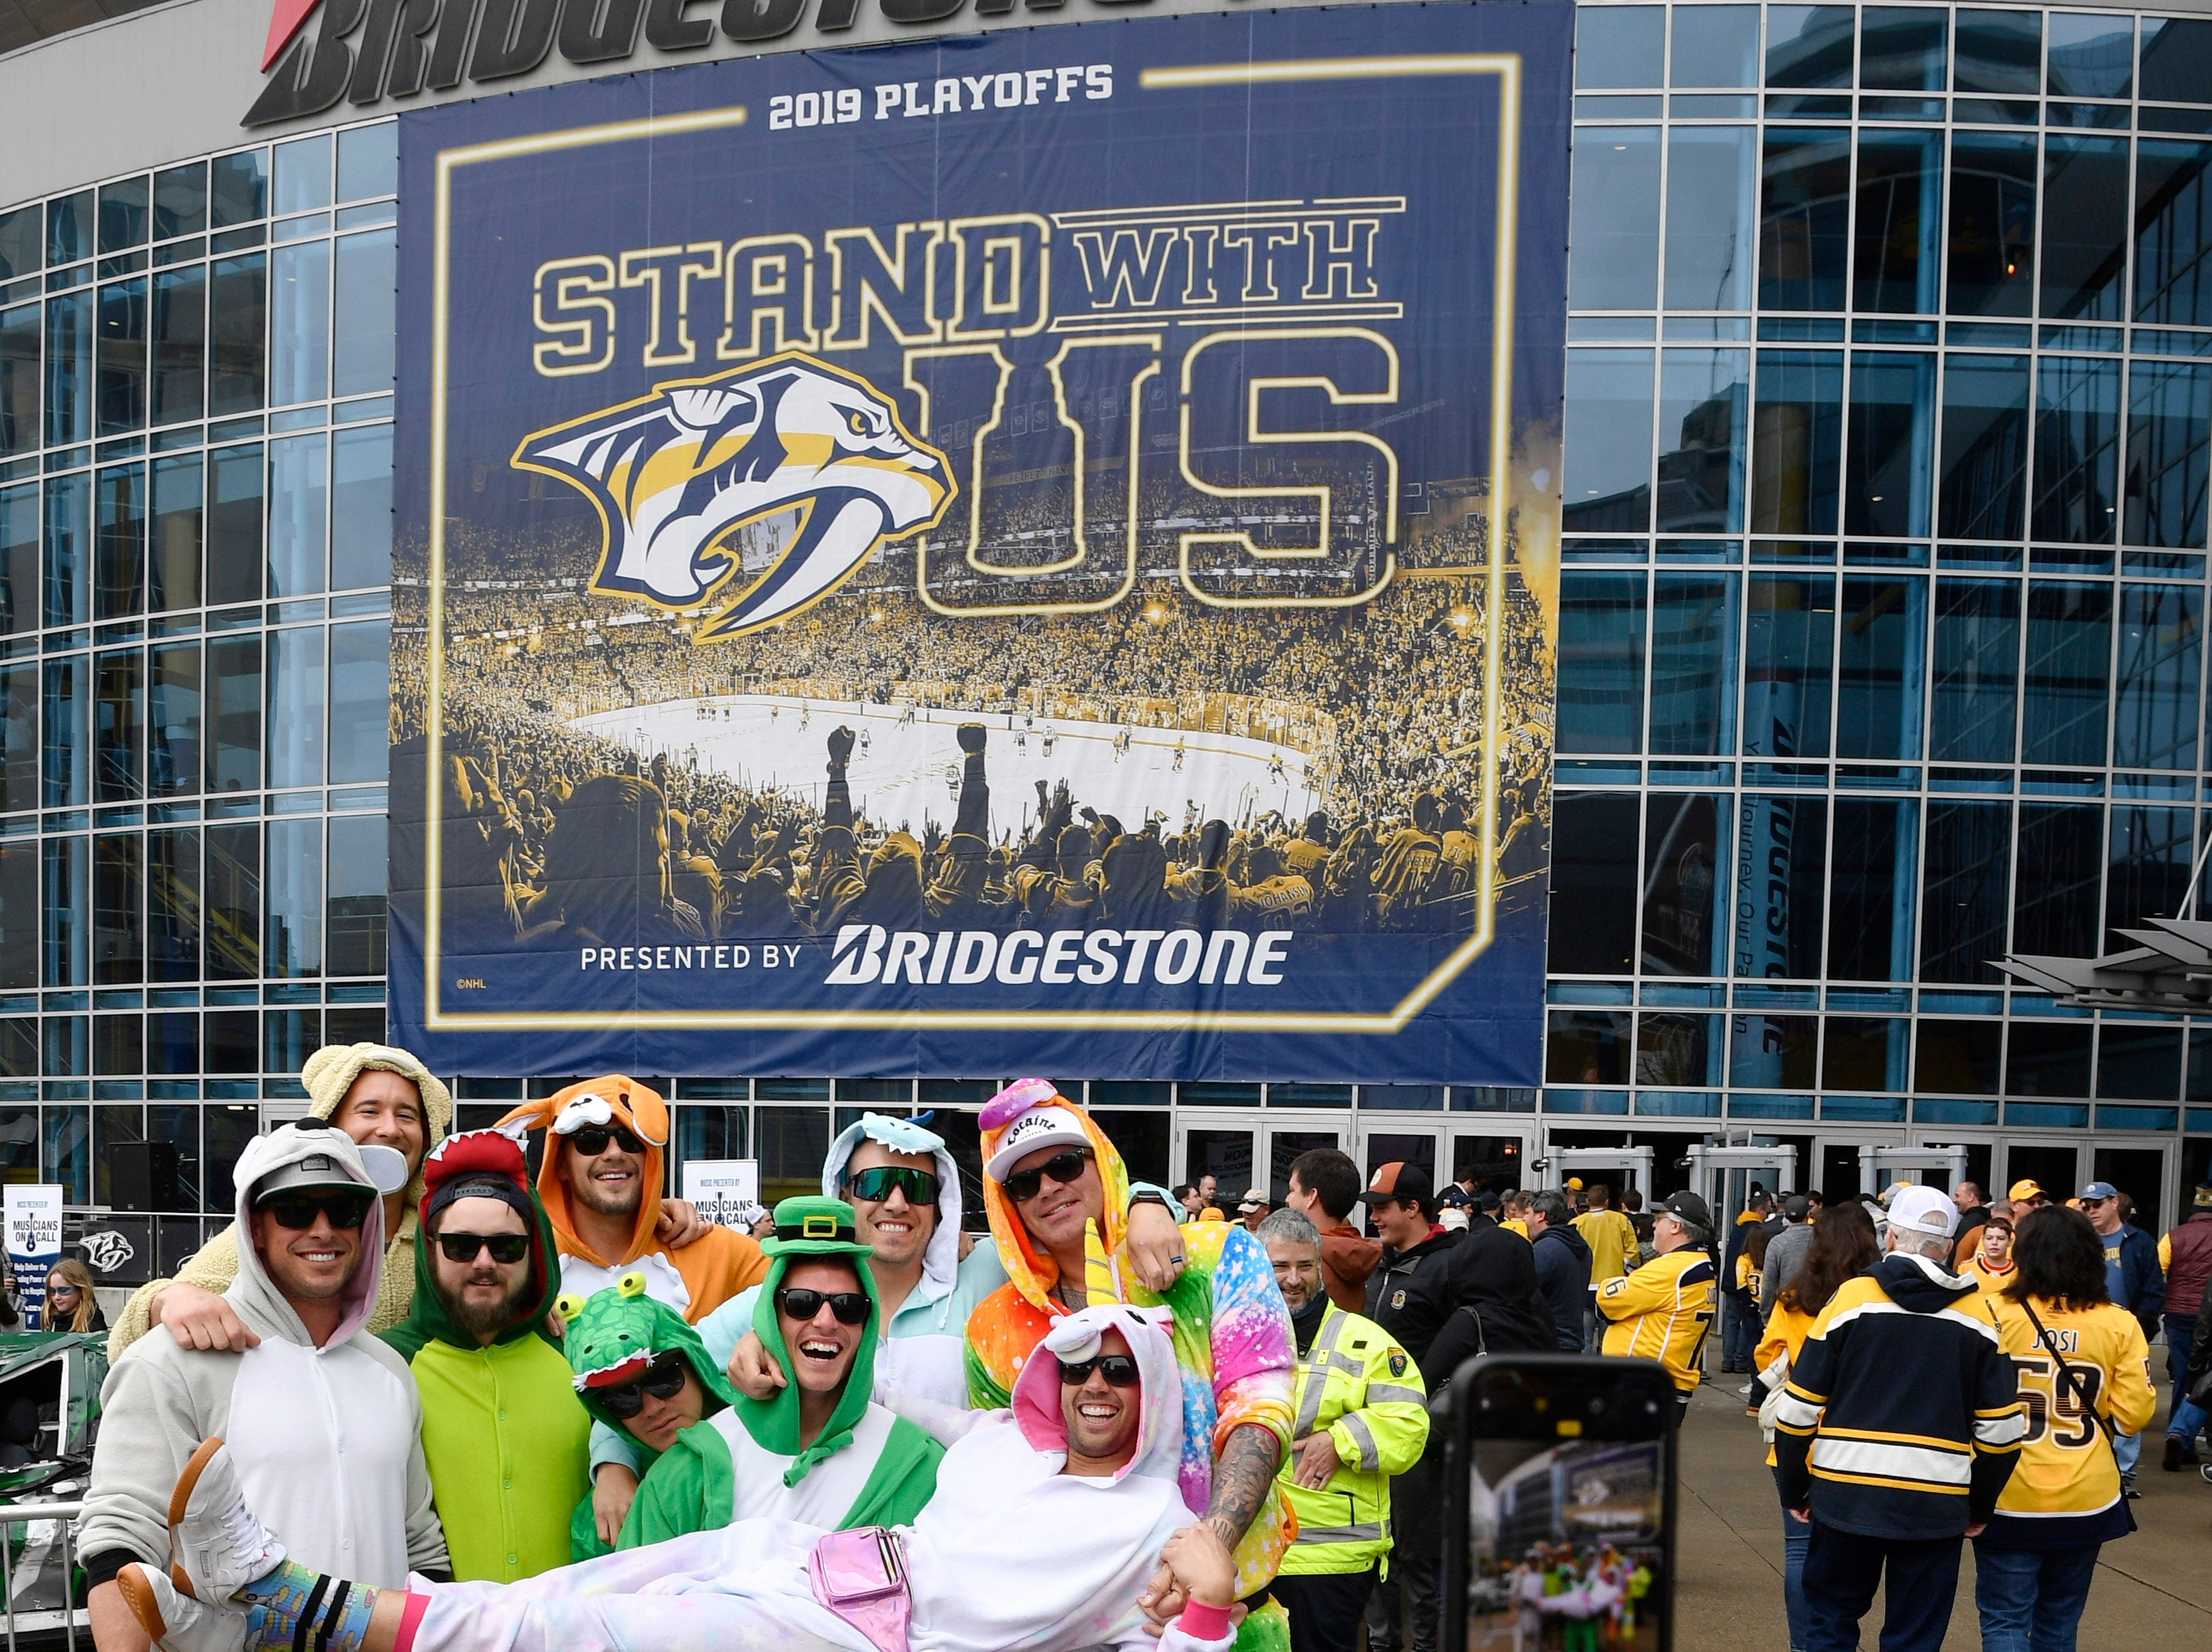 Fans dress in all kinds of costumes before the divisional semifinal game against the Stars at Bridgestone ArenaSaturday, April 20, 2019, in Nashville, Tenn.